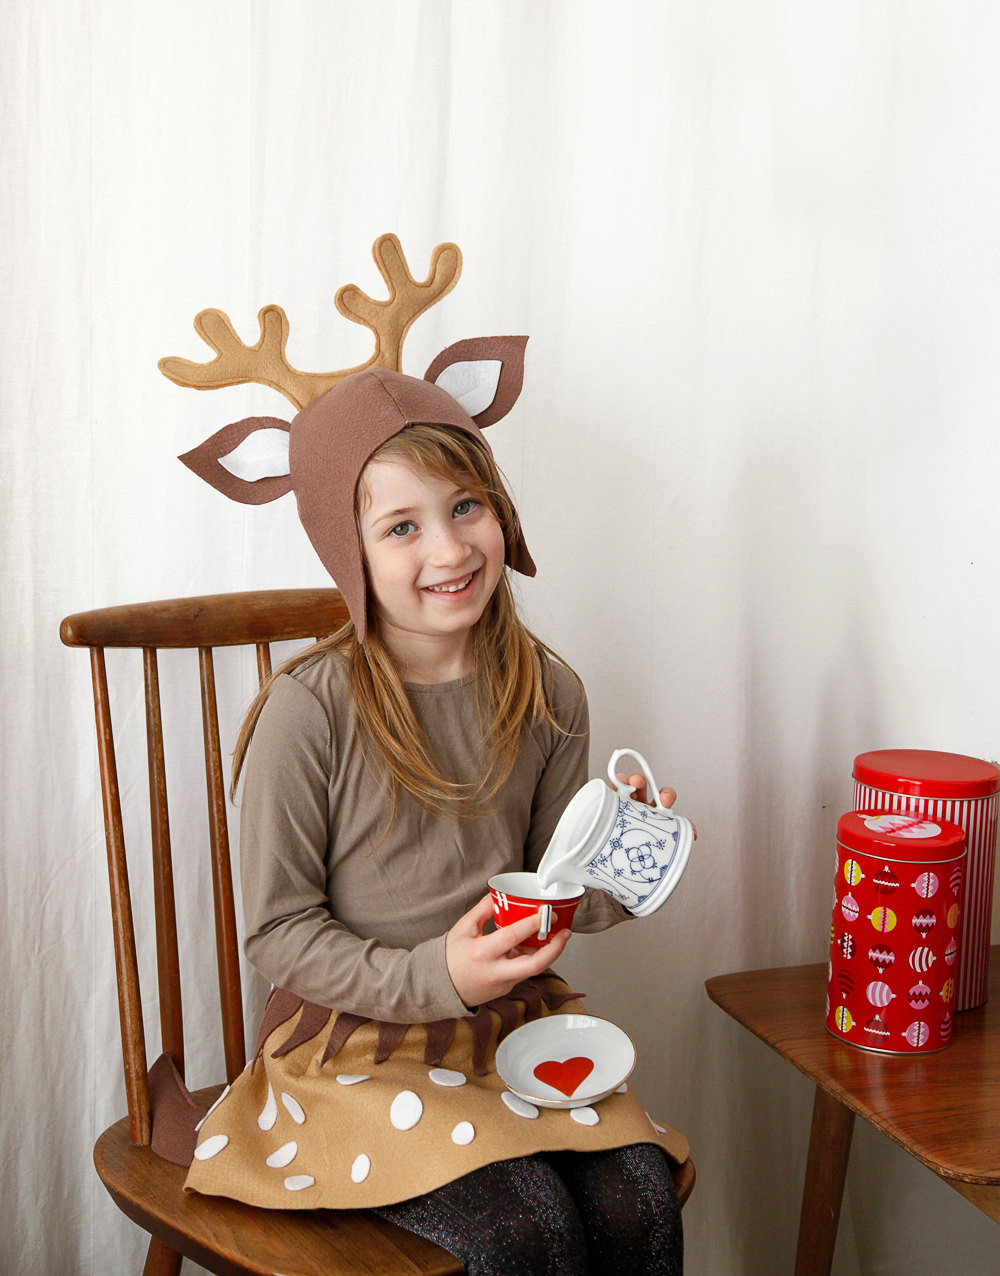 DIY Reindeer Costumes  Reindeer PATTERN DIY costume mask sewing tutorial creative